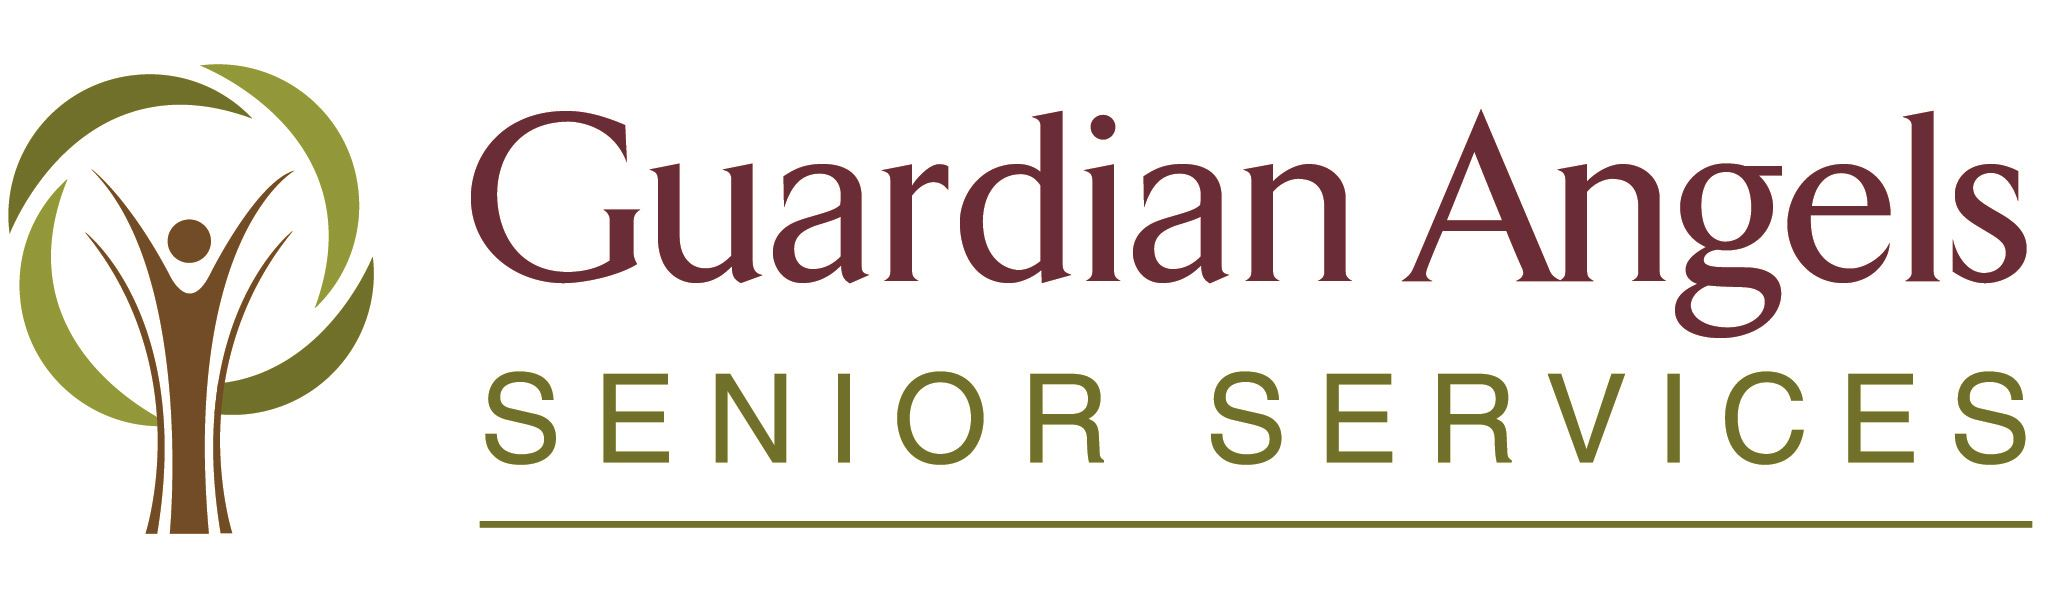 Guardian Angels Senior Services logo